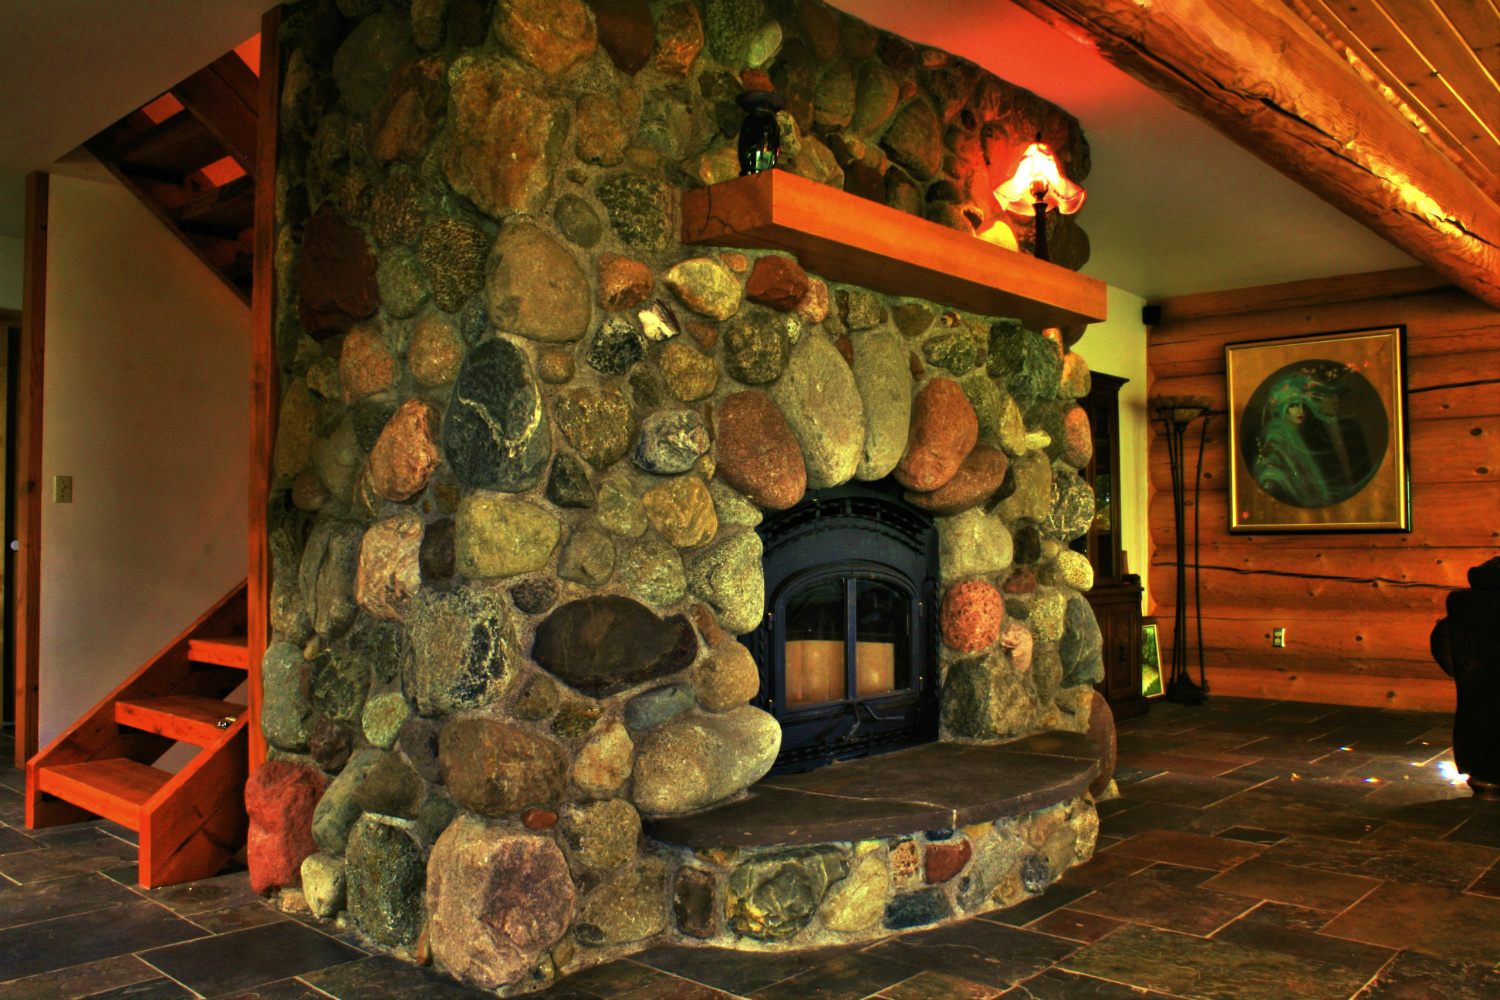 Field stone can be the perfect fit for a rustic home or cabin. Your stone mason designer can guide you on how heavy those stones should be for your setting.